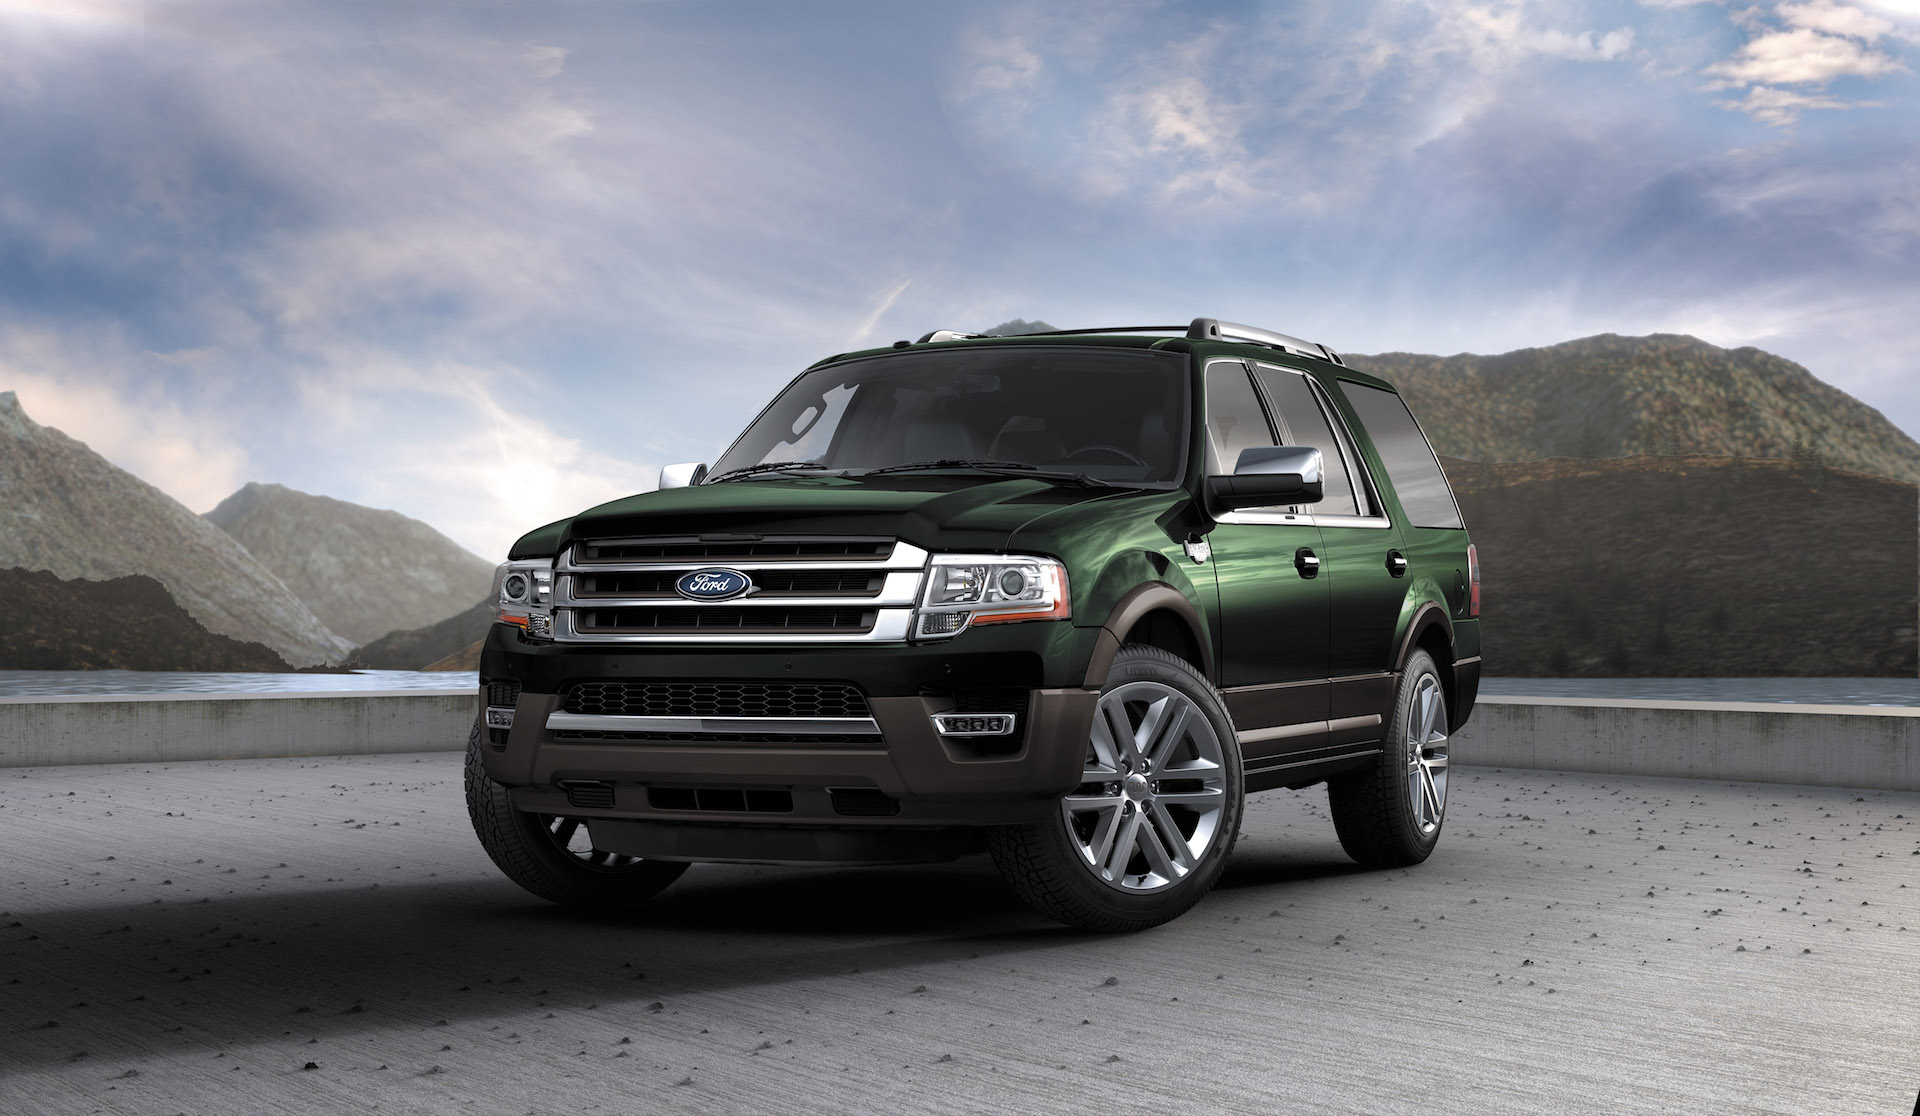 Used Cars For Sale In Oklahoma >> 2017 Ford Expedition Review, Ratings, Specs, Prices, and Photos - The Car Connection